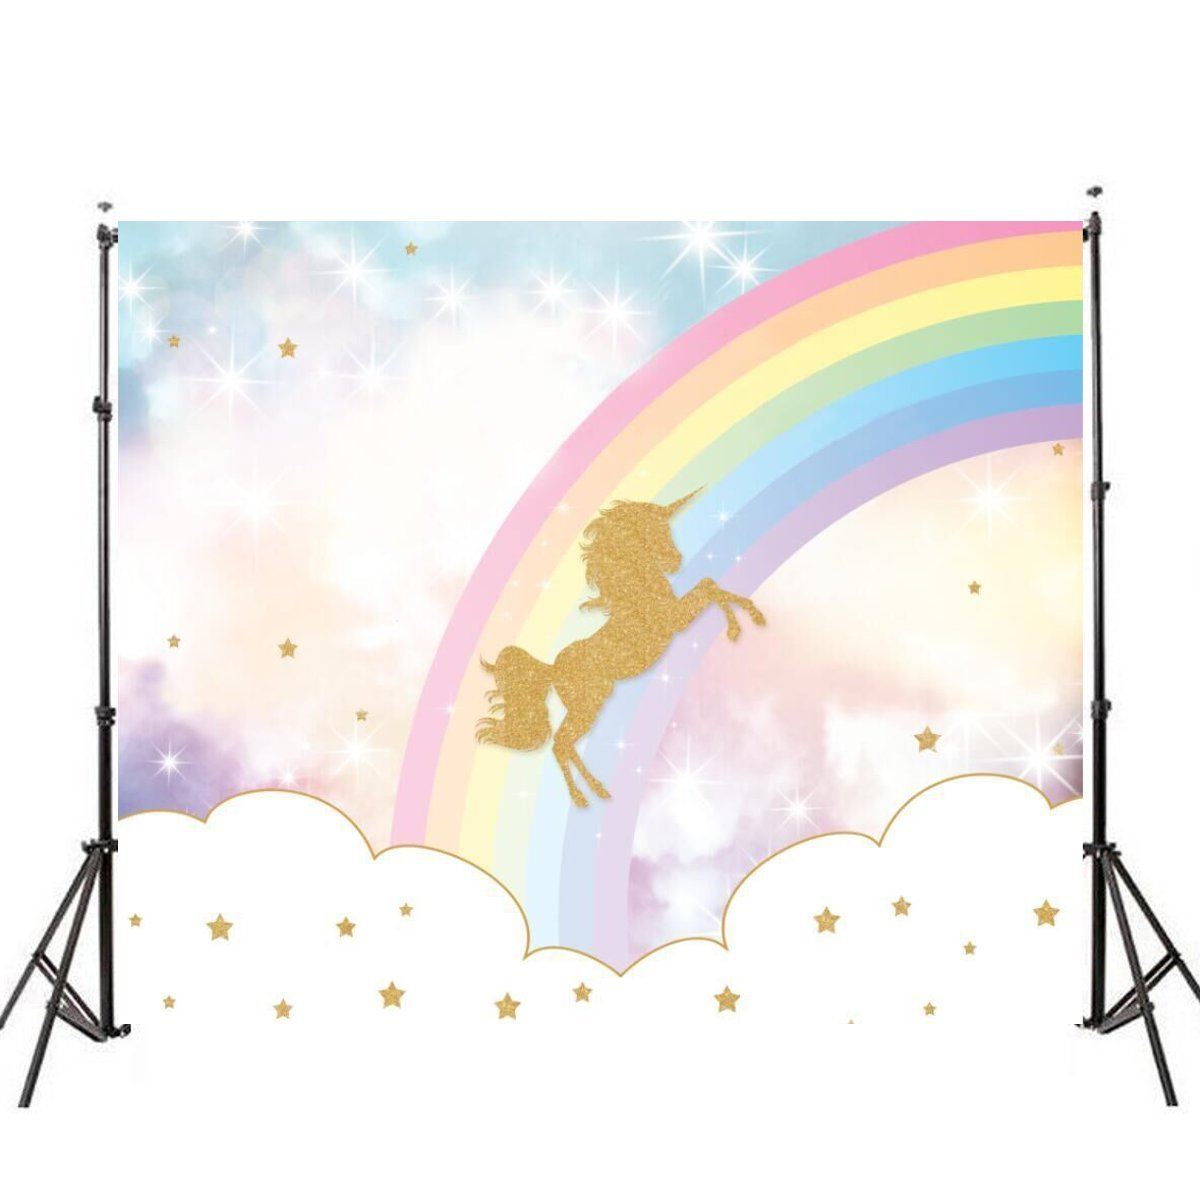 7x5FT Rainbow Sky Gold Unicorn Stars Baby Custom Photo Background Backdrop Vinyl